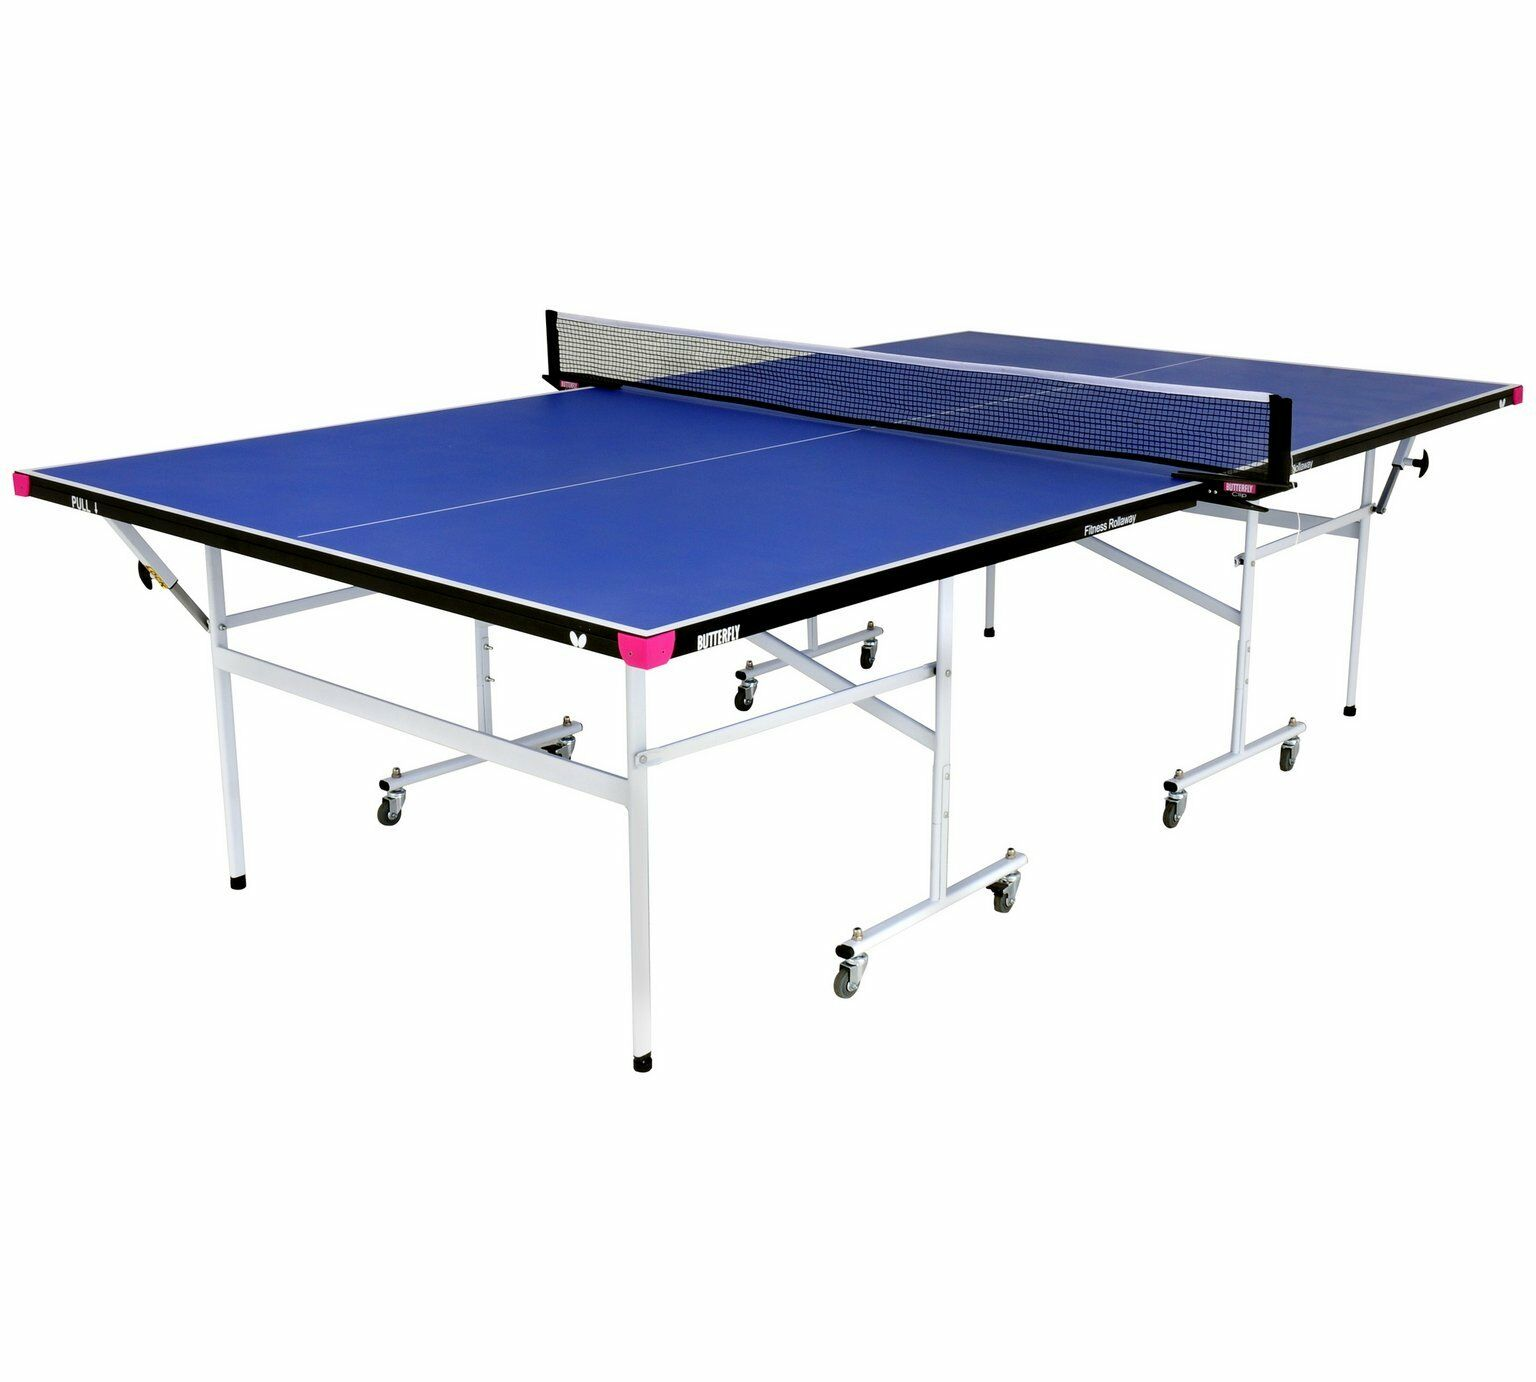 Folding Table Tennis Table Full Size bluee Green Indoor Outdoor Home Ping Pong